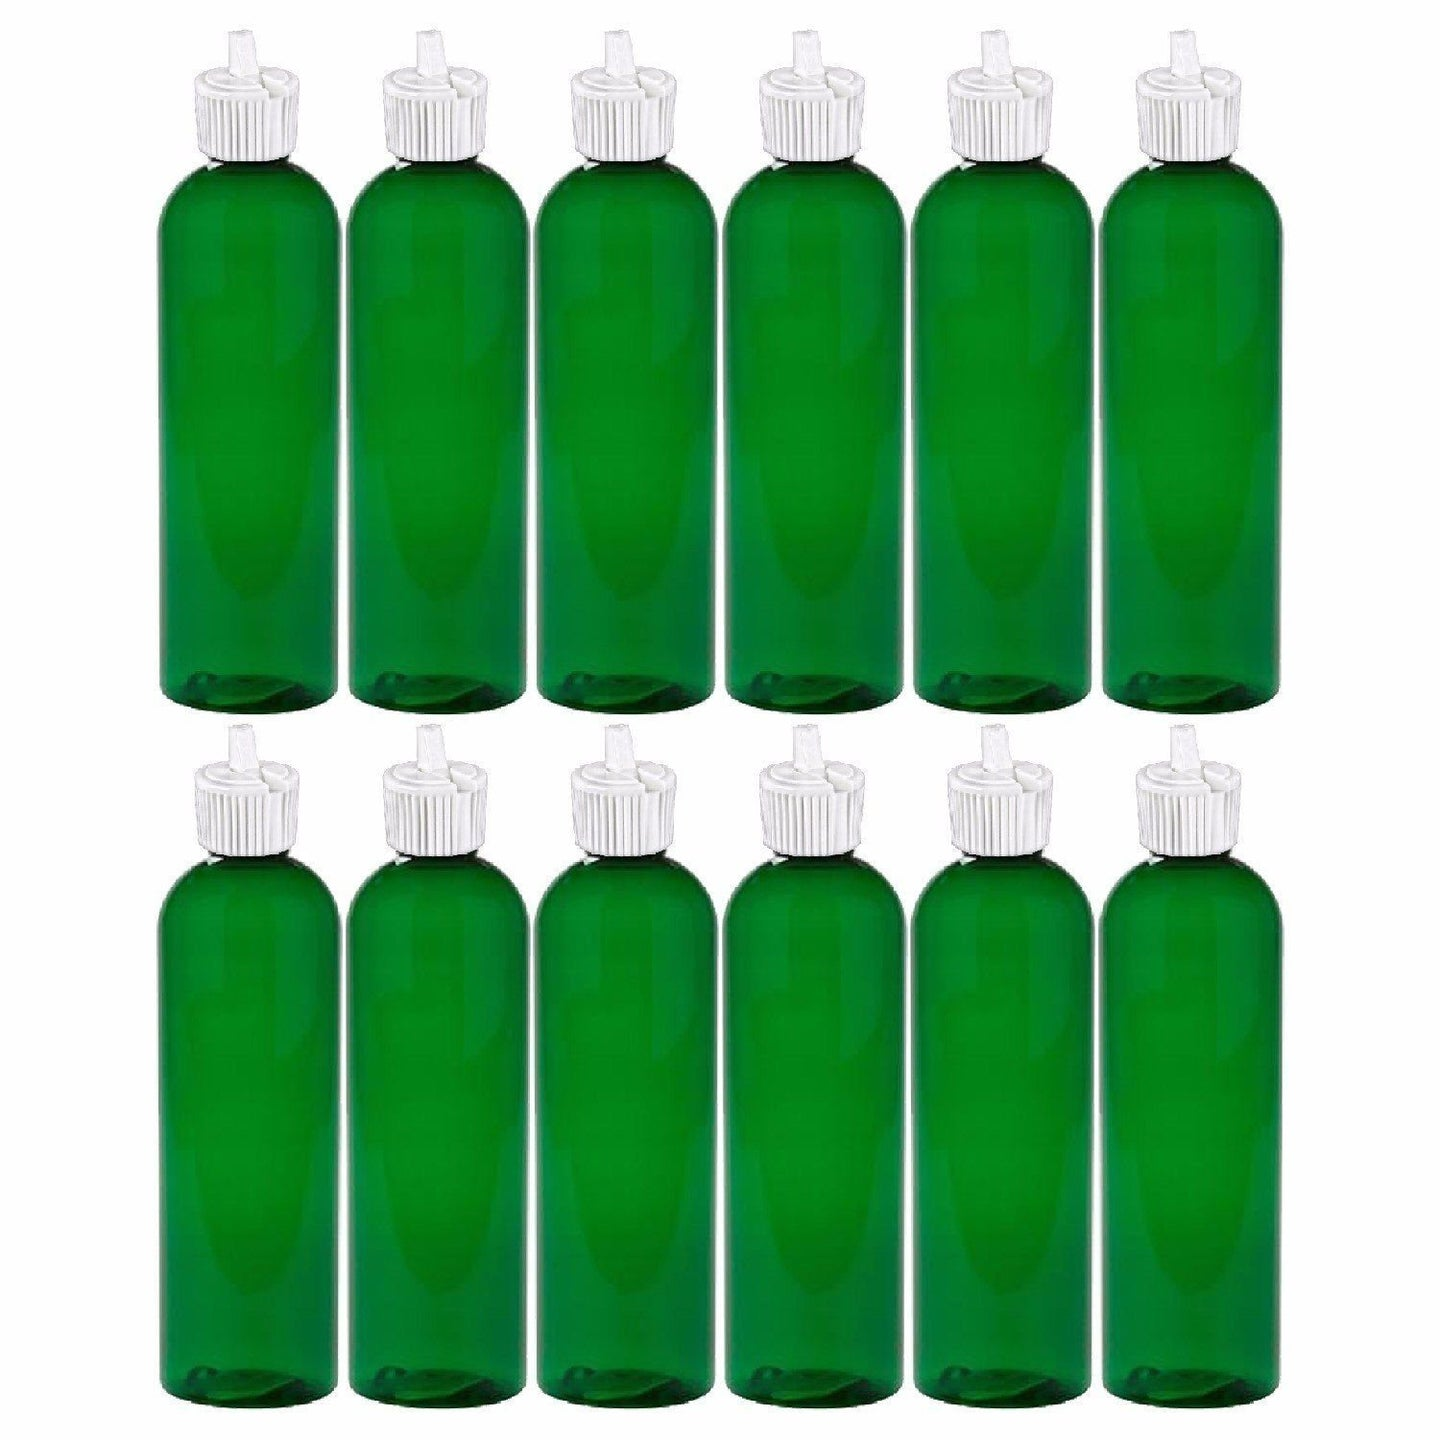 MoYo Natural Labs 4 oz Squirt Bottles, Squeezable Empty Travel Containers, BPA Free PET Plastic for Essential Oils and Liquids, Toiletry/Cosmetic Bottles (Neck 20-410) (Pack of 12, Green)